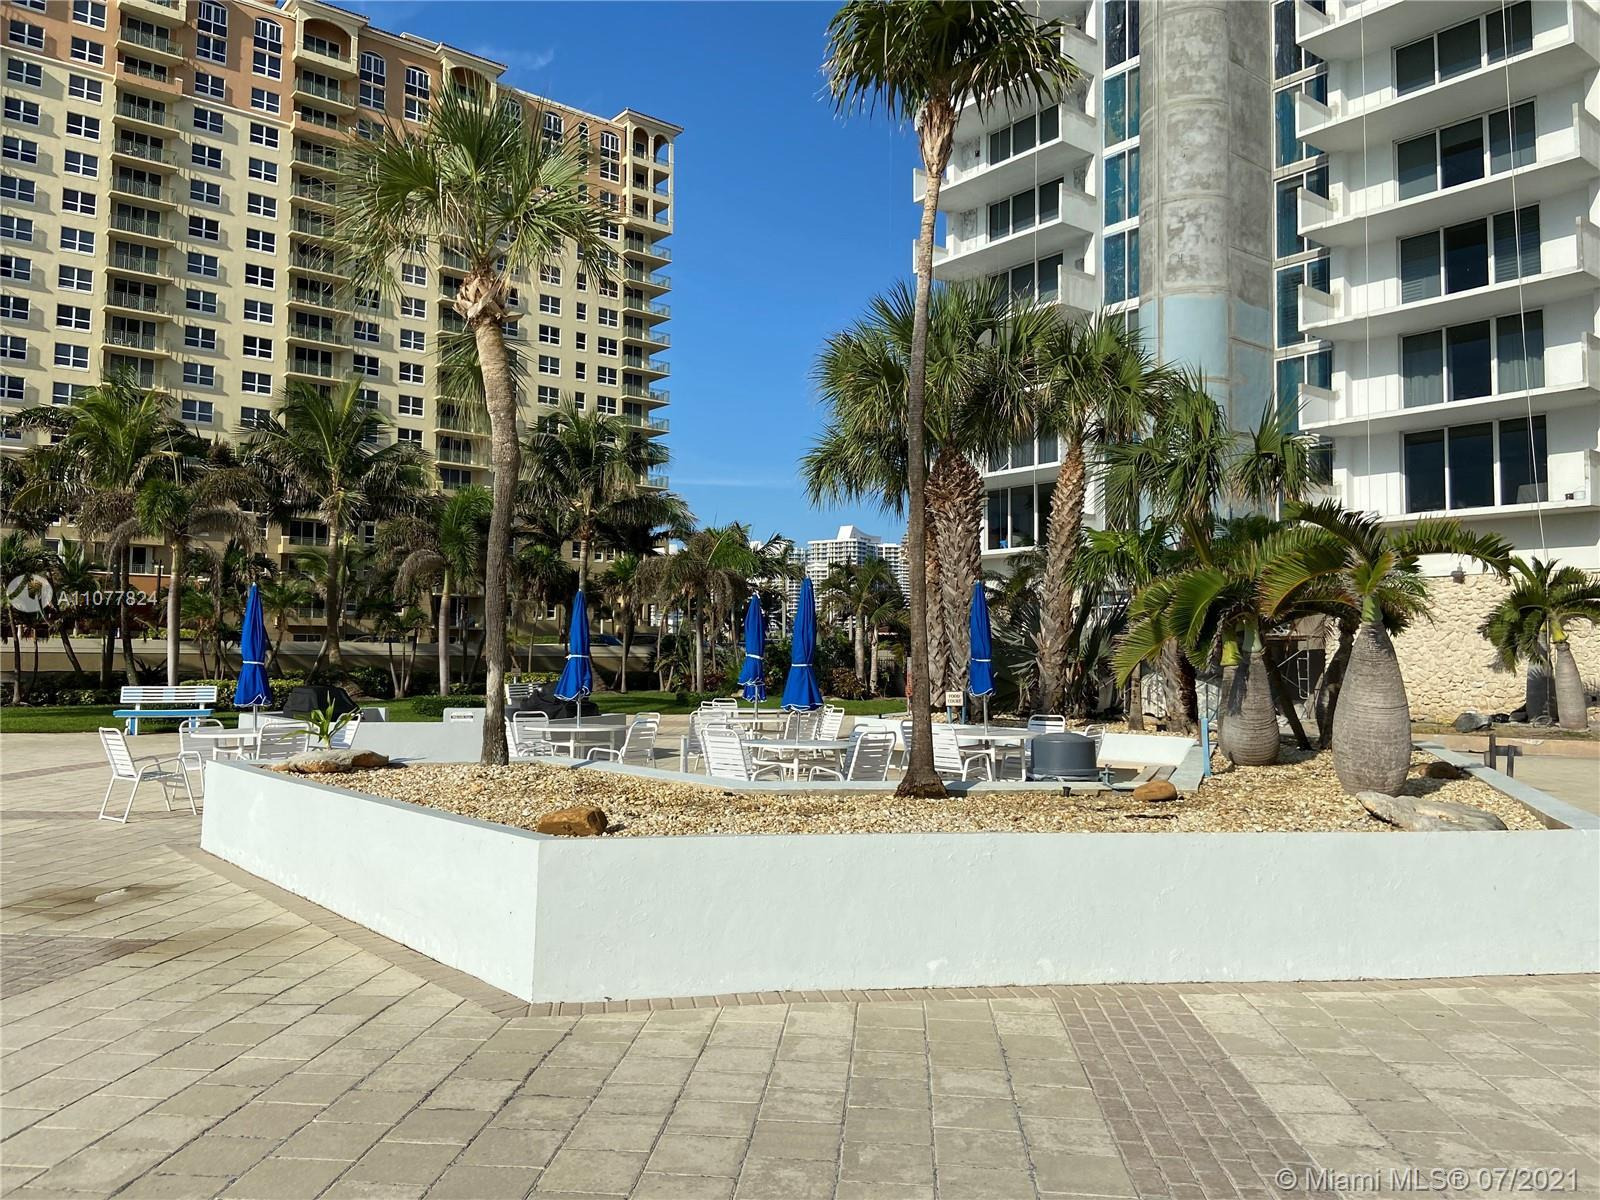 Parker Plaza. 1BR/1BTH, 21ST FLOOR, BEAUTIFUL CITY VIEW, RIGHT ON THE BEACH, FULLY UPGRADED, APPLIAN